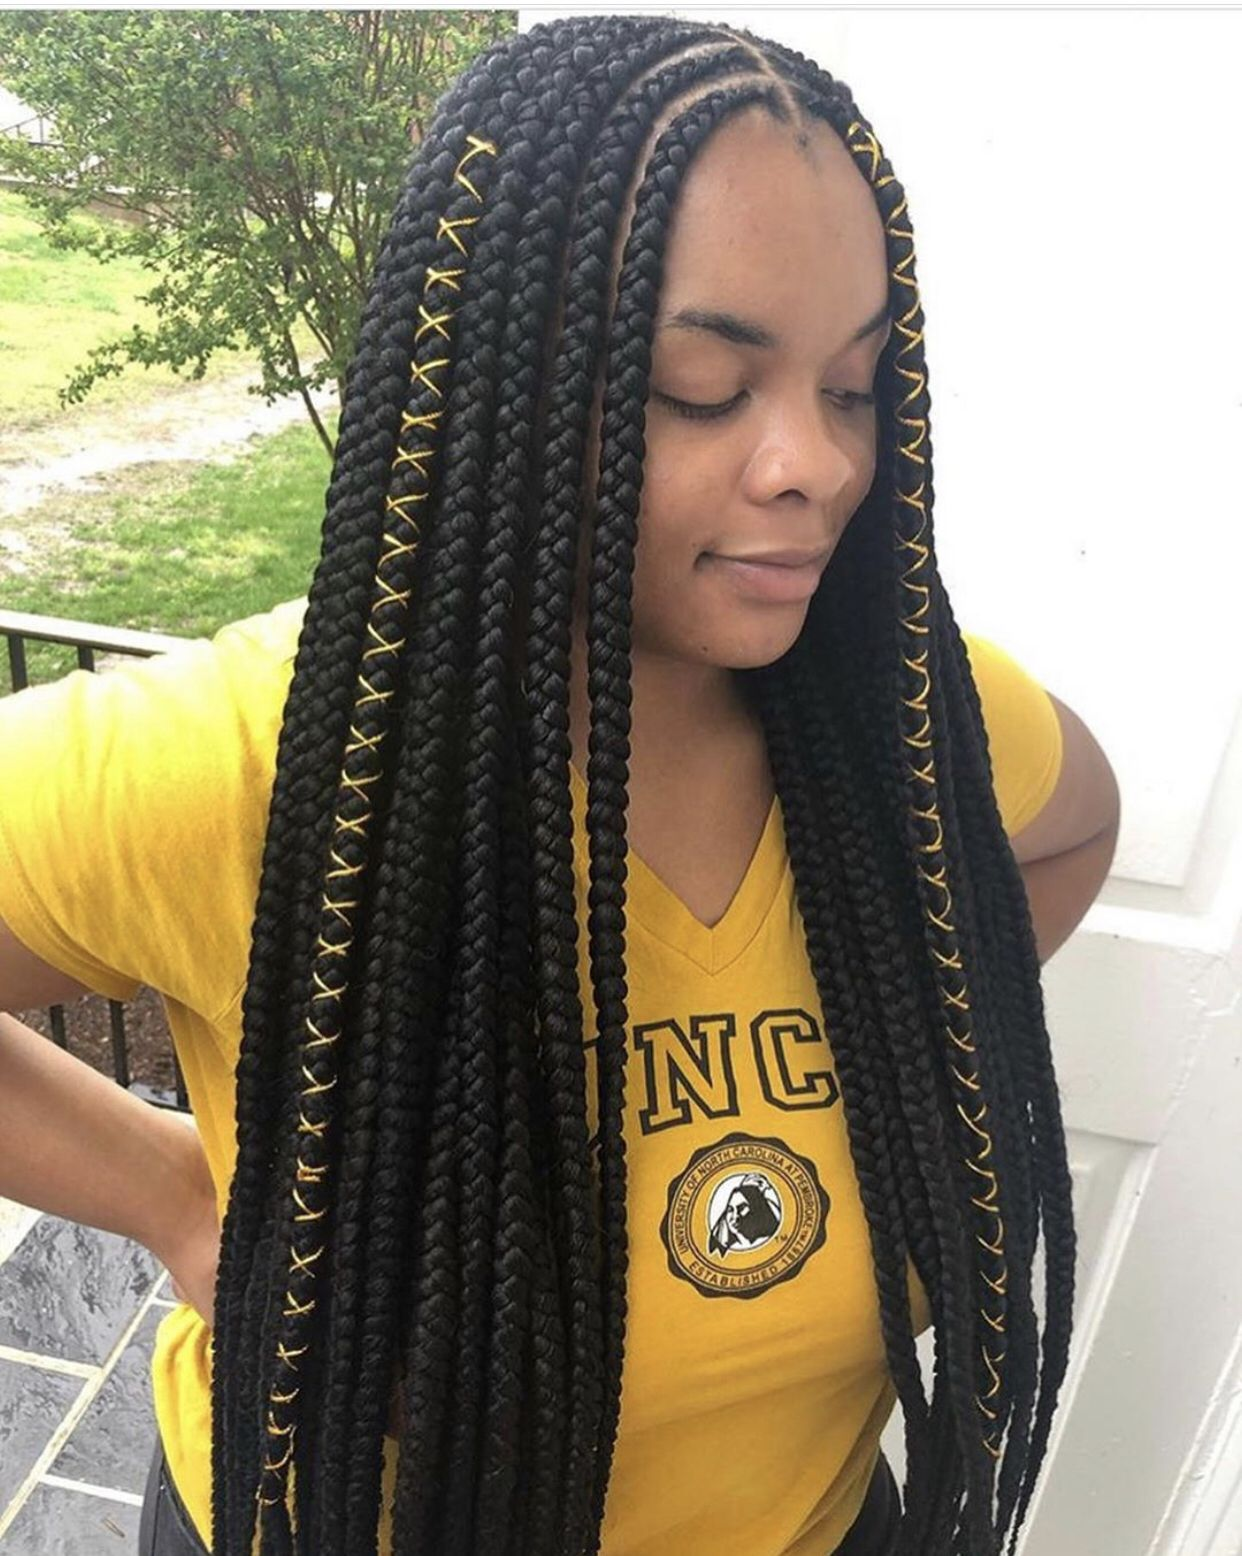 The Ultimate Guide For Summer Hairstyles Nique S Beauty Box Braids Hairstyles Braided Hairstyles Hair Styles